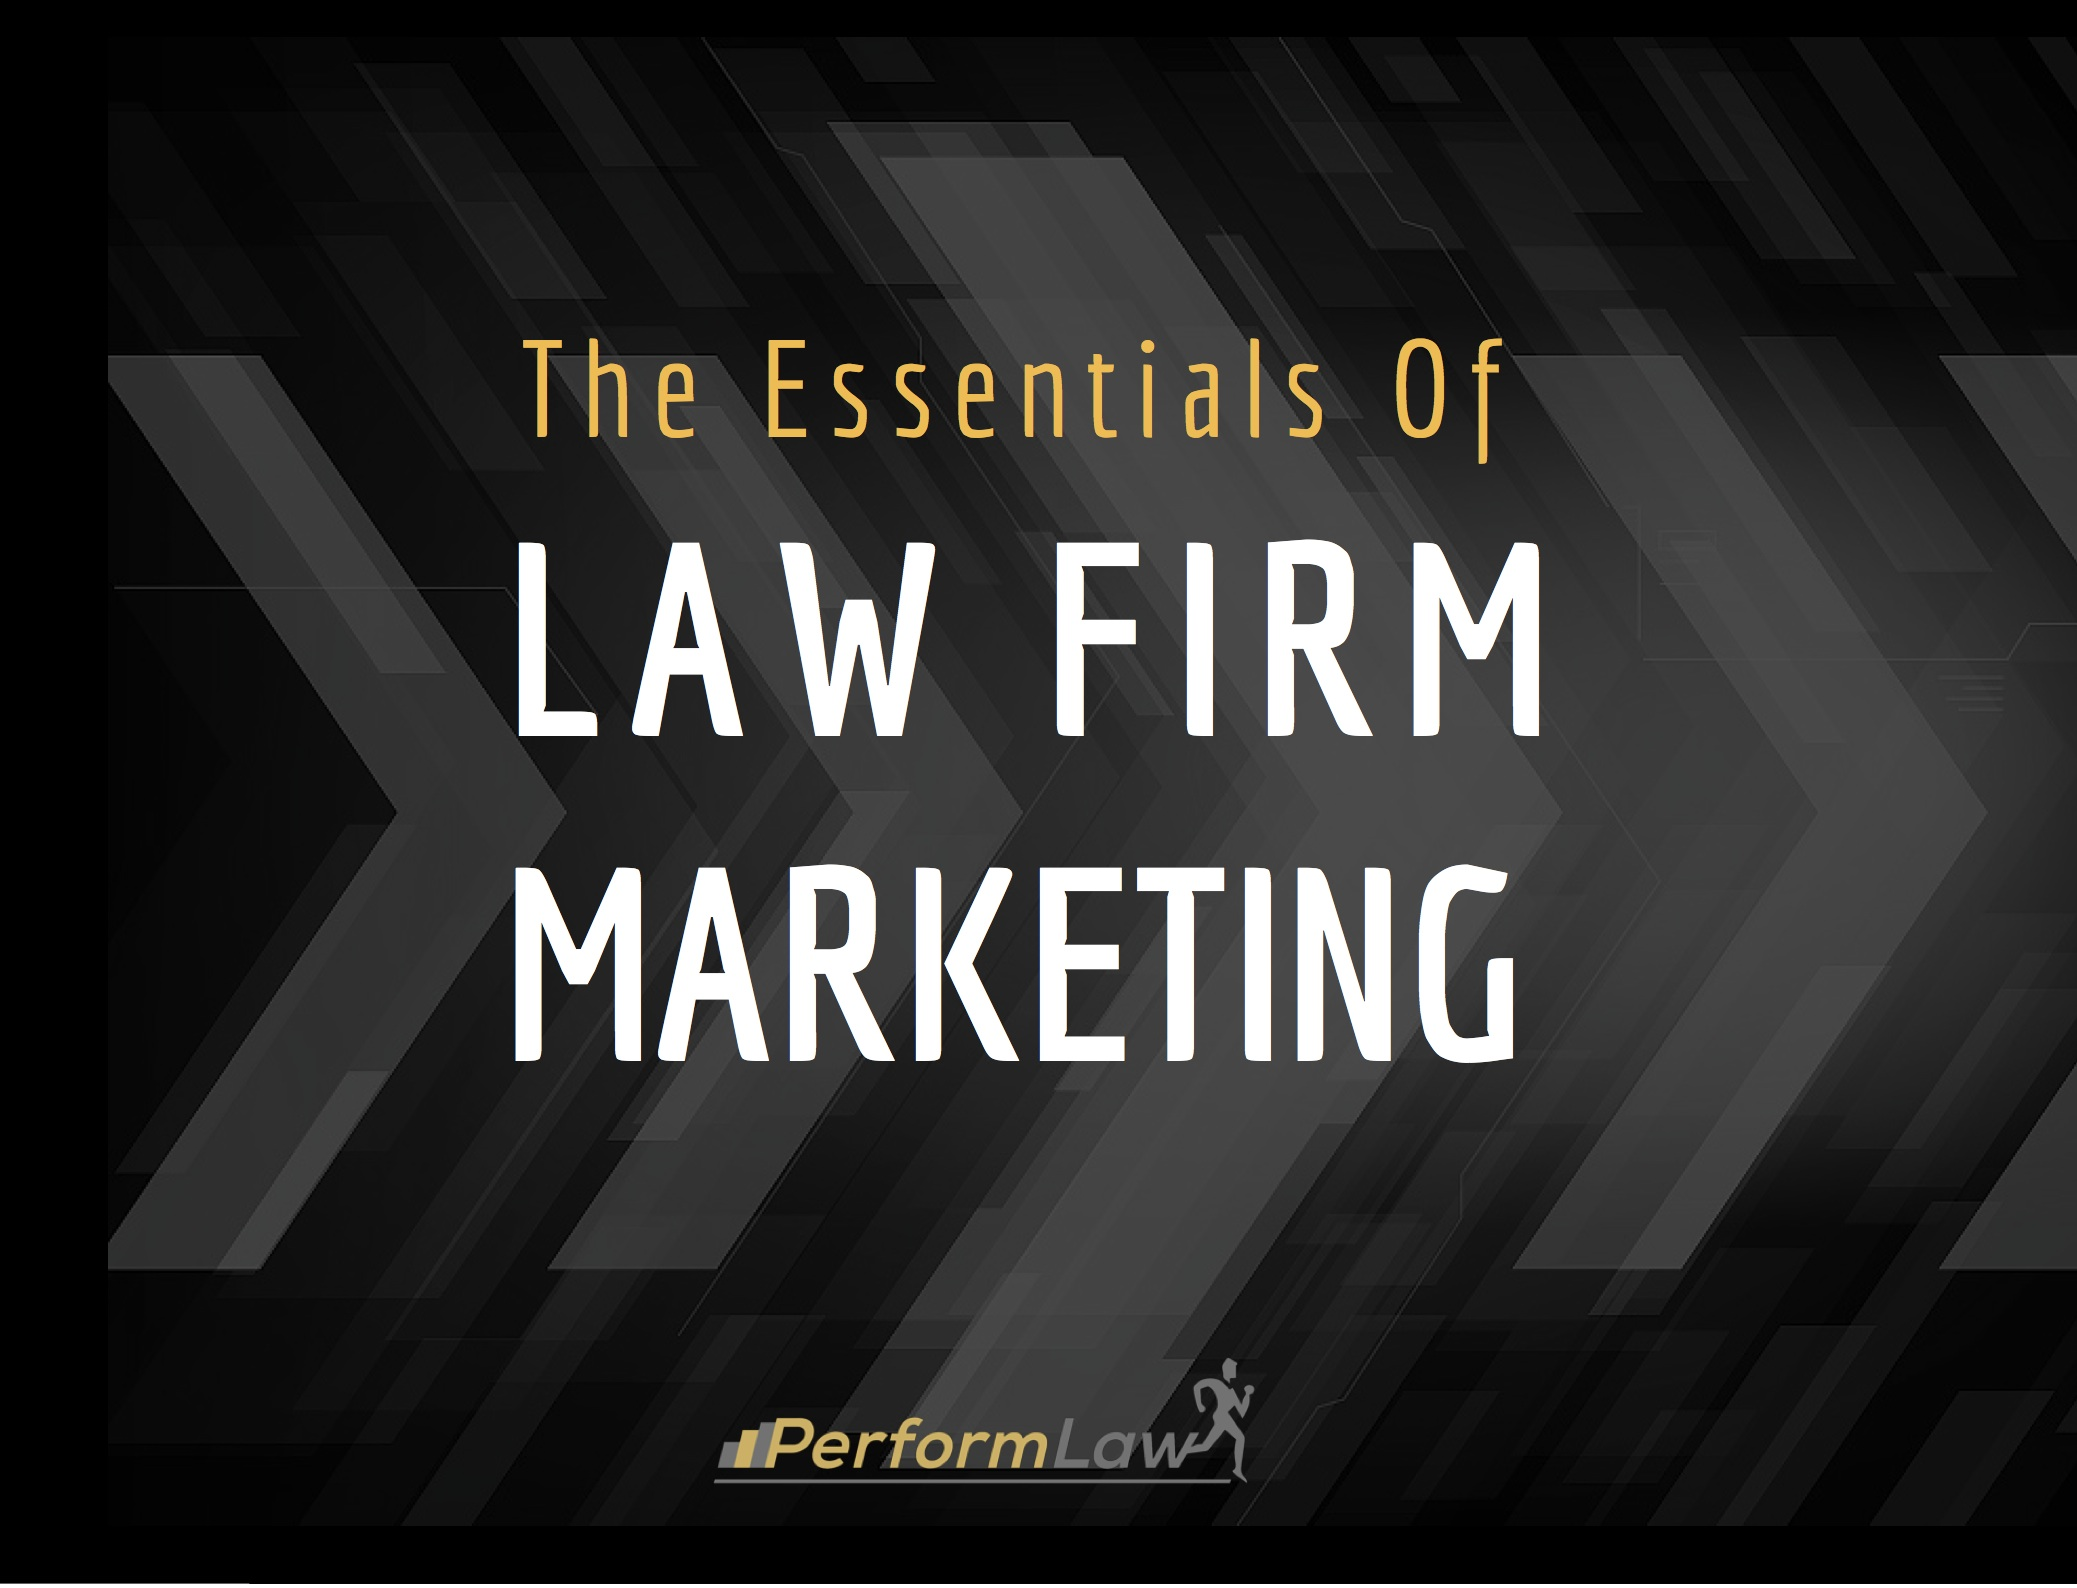 Resources-Ebook-Essentials-Law-Firm-Marketing-Image.jpg